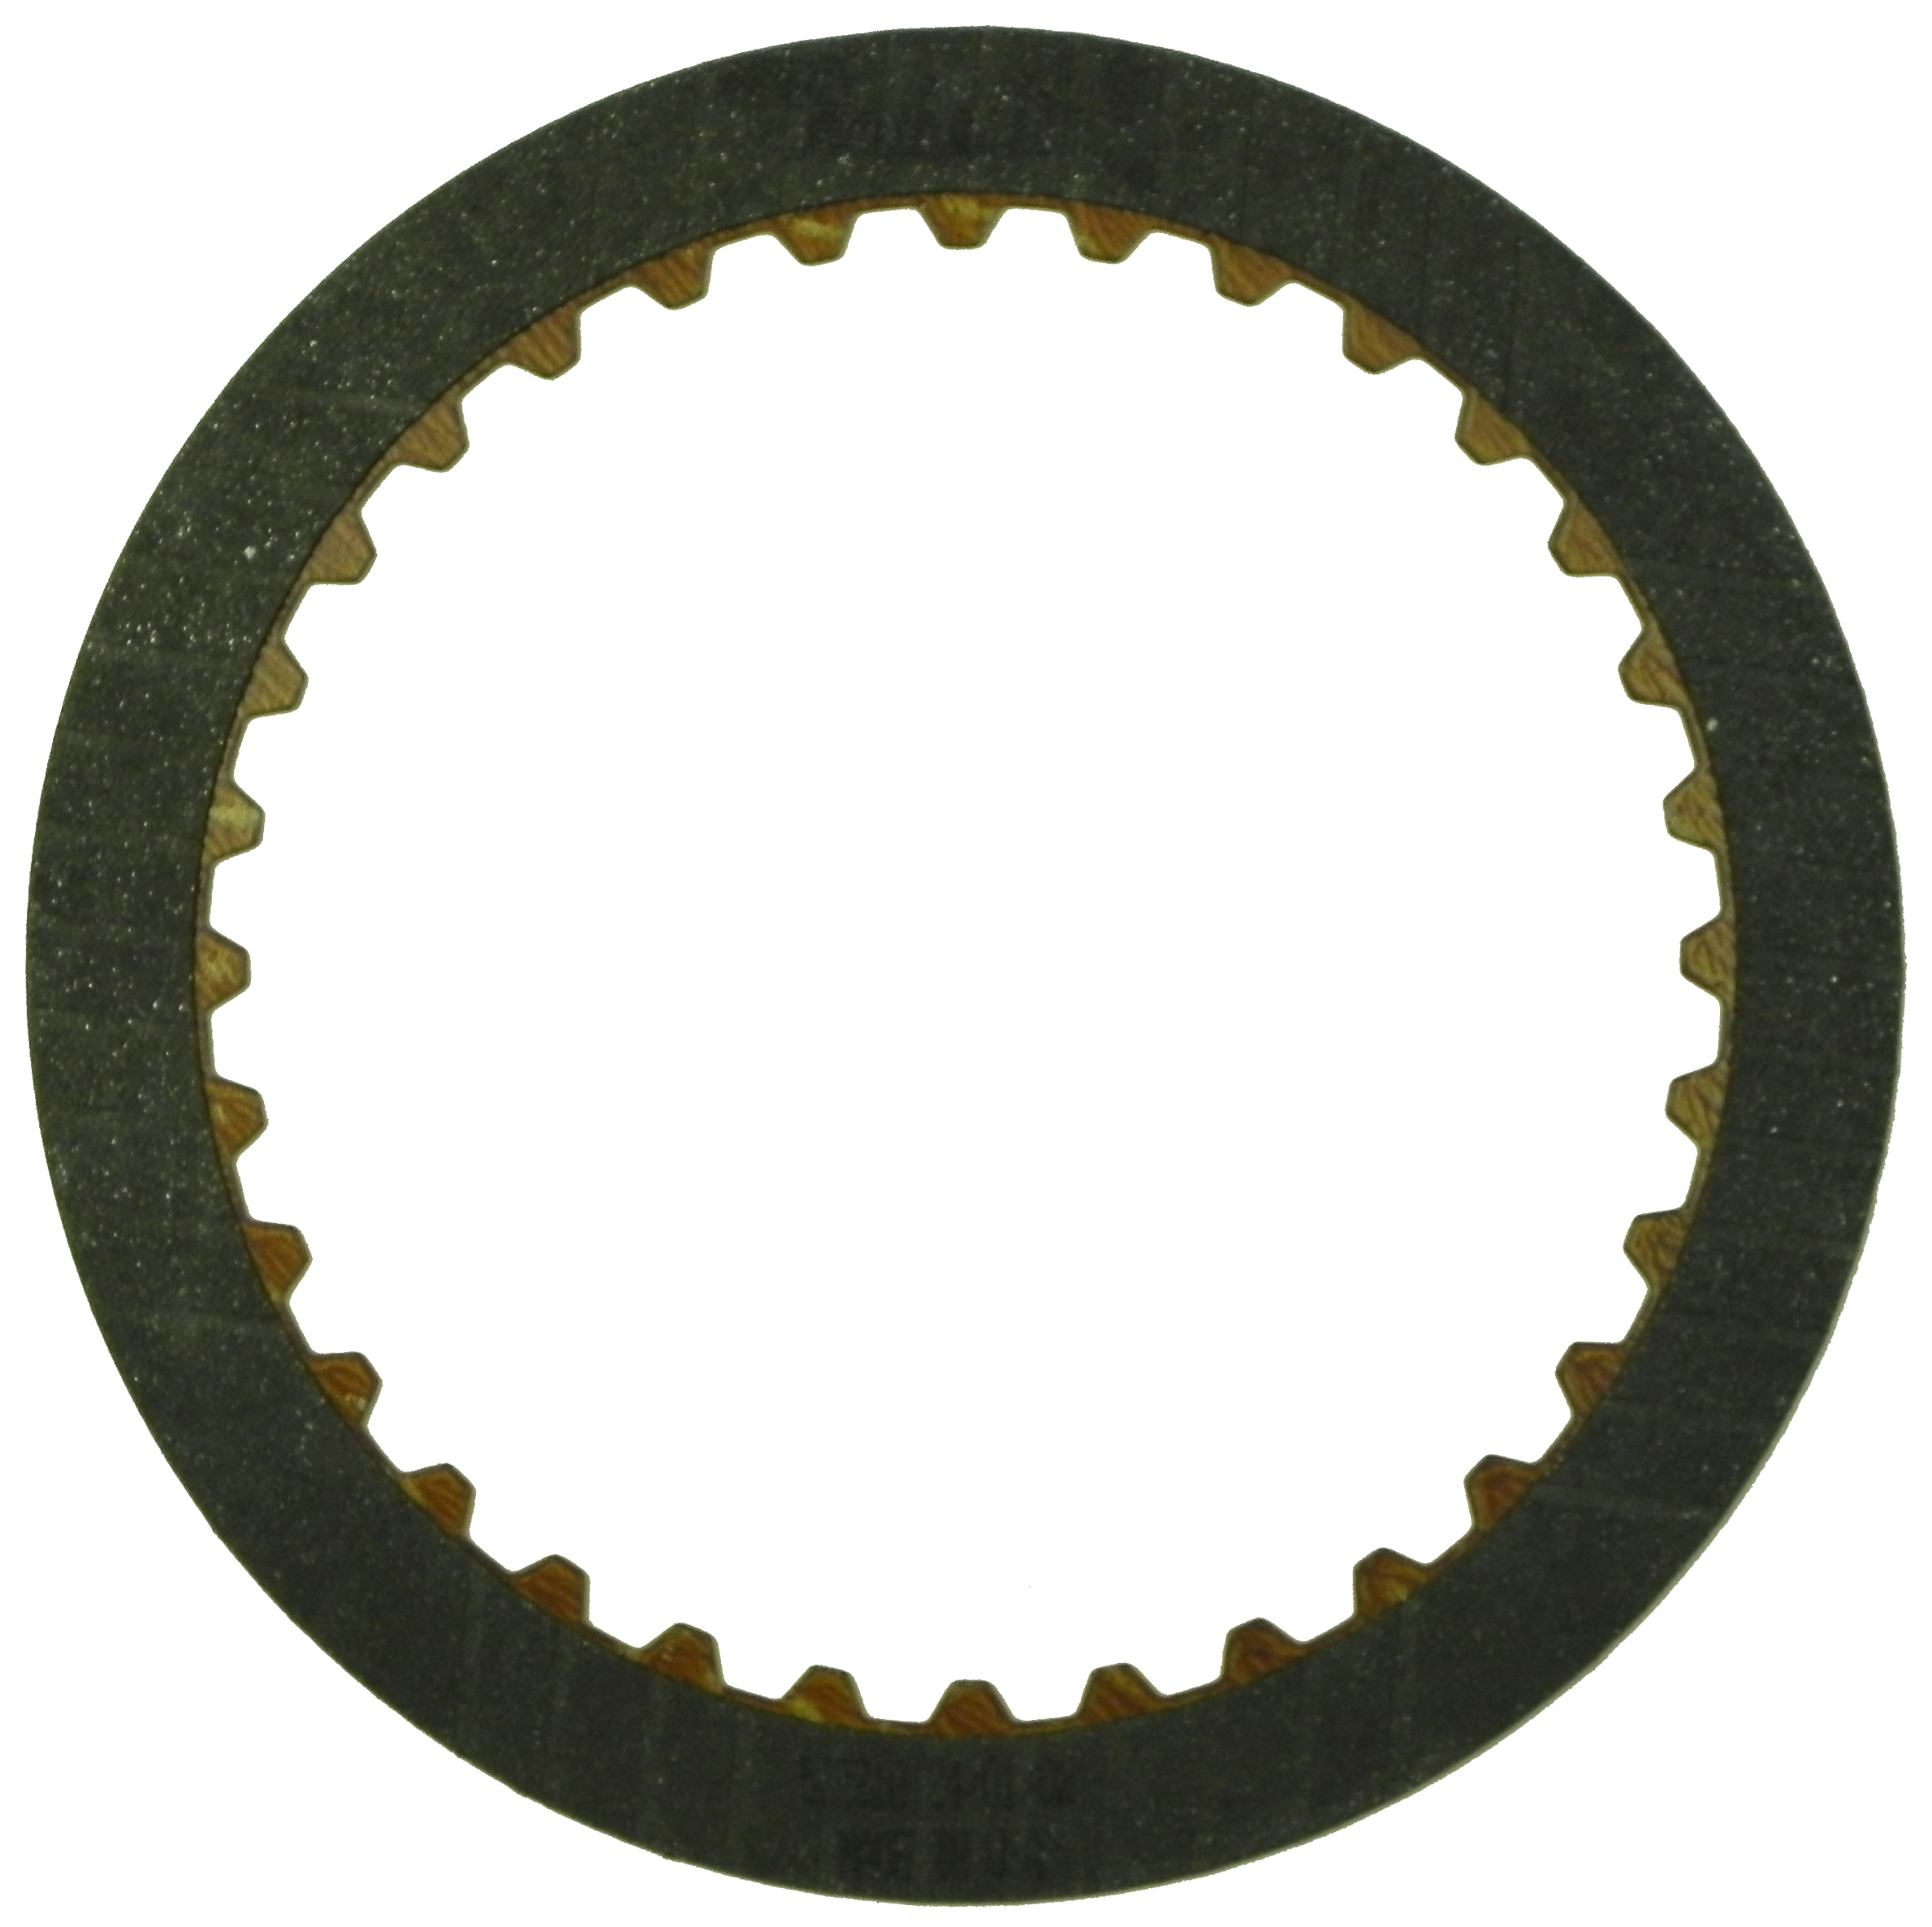 R572310 | 1999-ON Friction Clutch Plate High Energy Forward, Direct High Energy